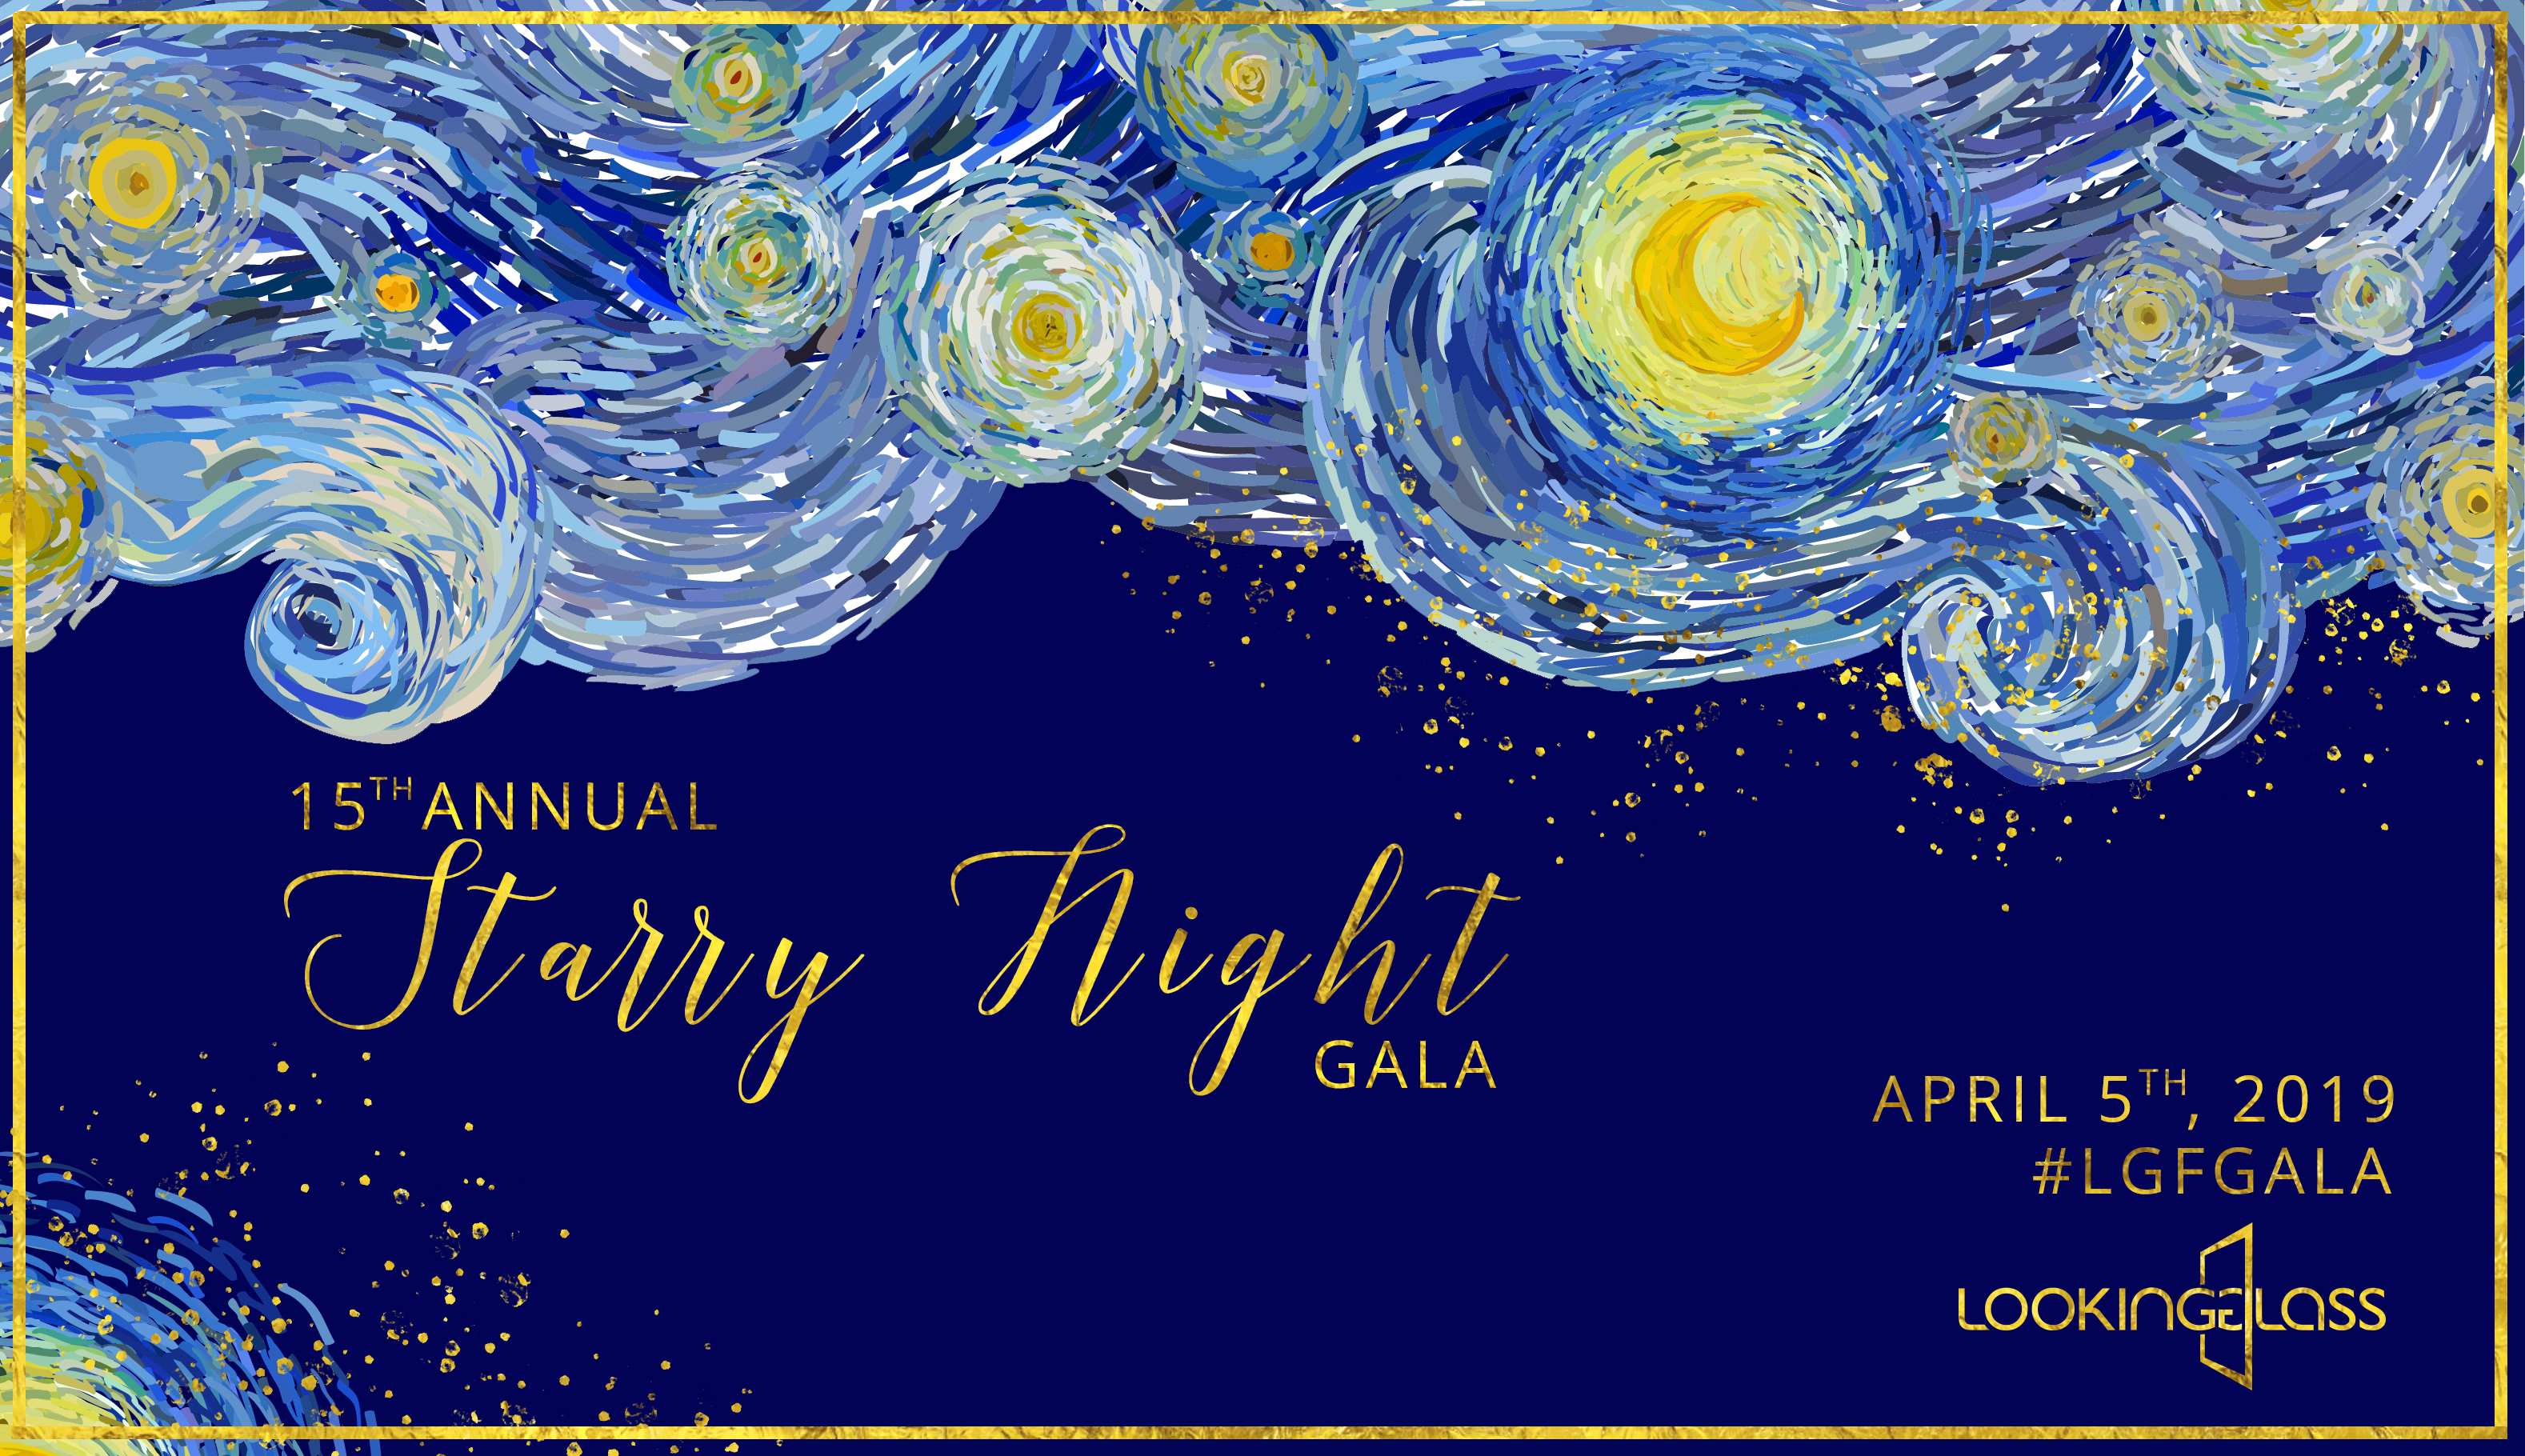 Looking Glass Foundation's 15th Annual Gala